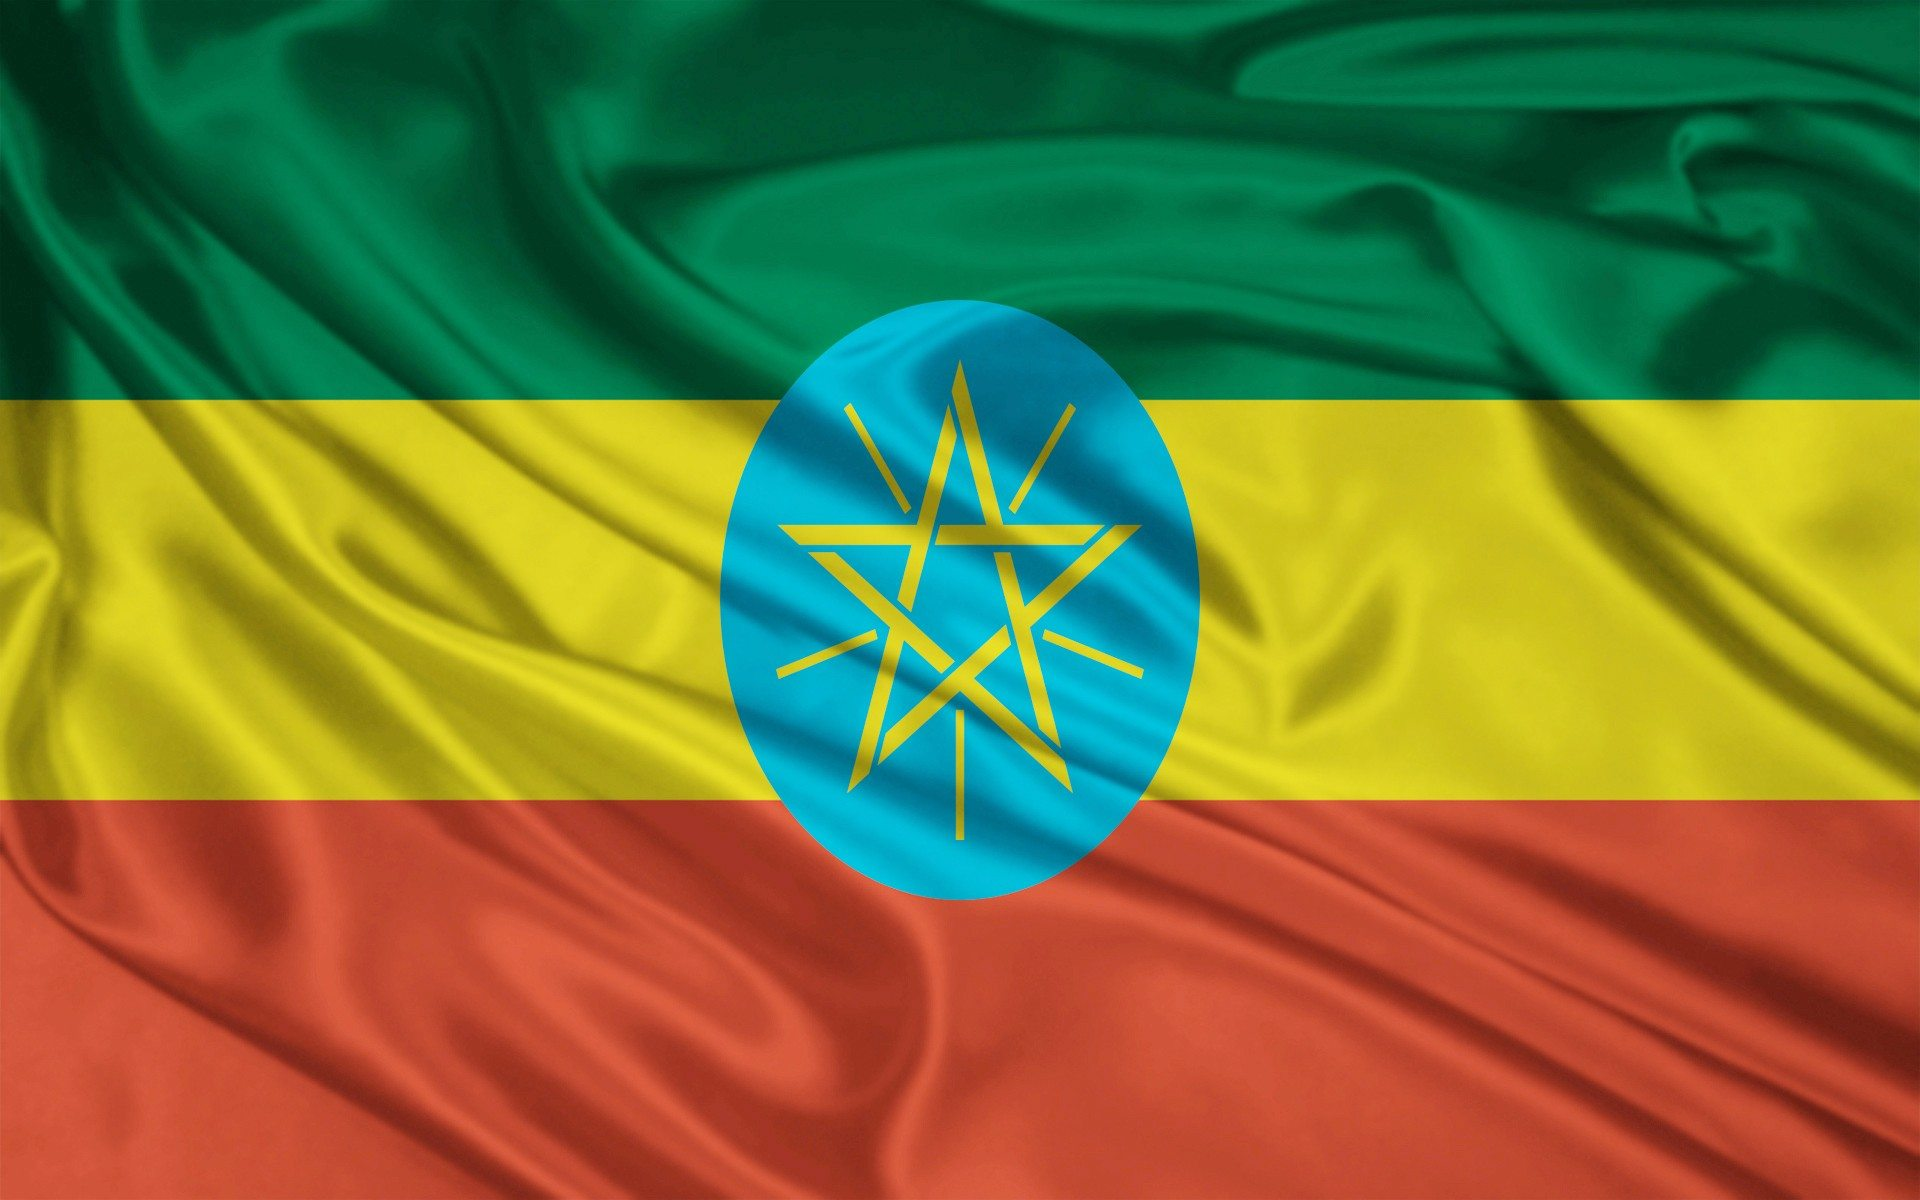 Ethiopia Flag: Interesting Facts About The Flag of Ethiopia